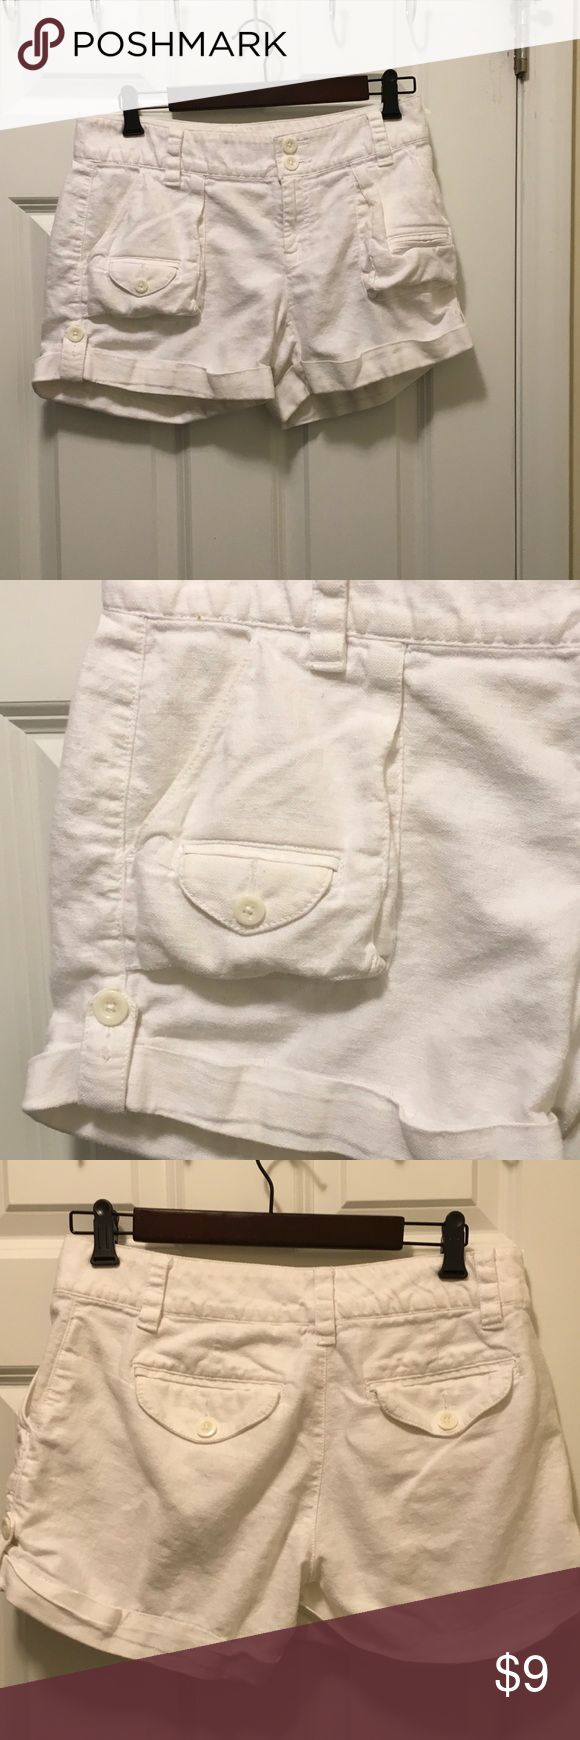 Size 6 Old Navy ultra low waist cargo short. Size 6 Old Navy ultra low waist cargo short. Old Navy Shorts